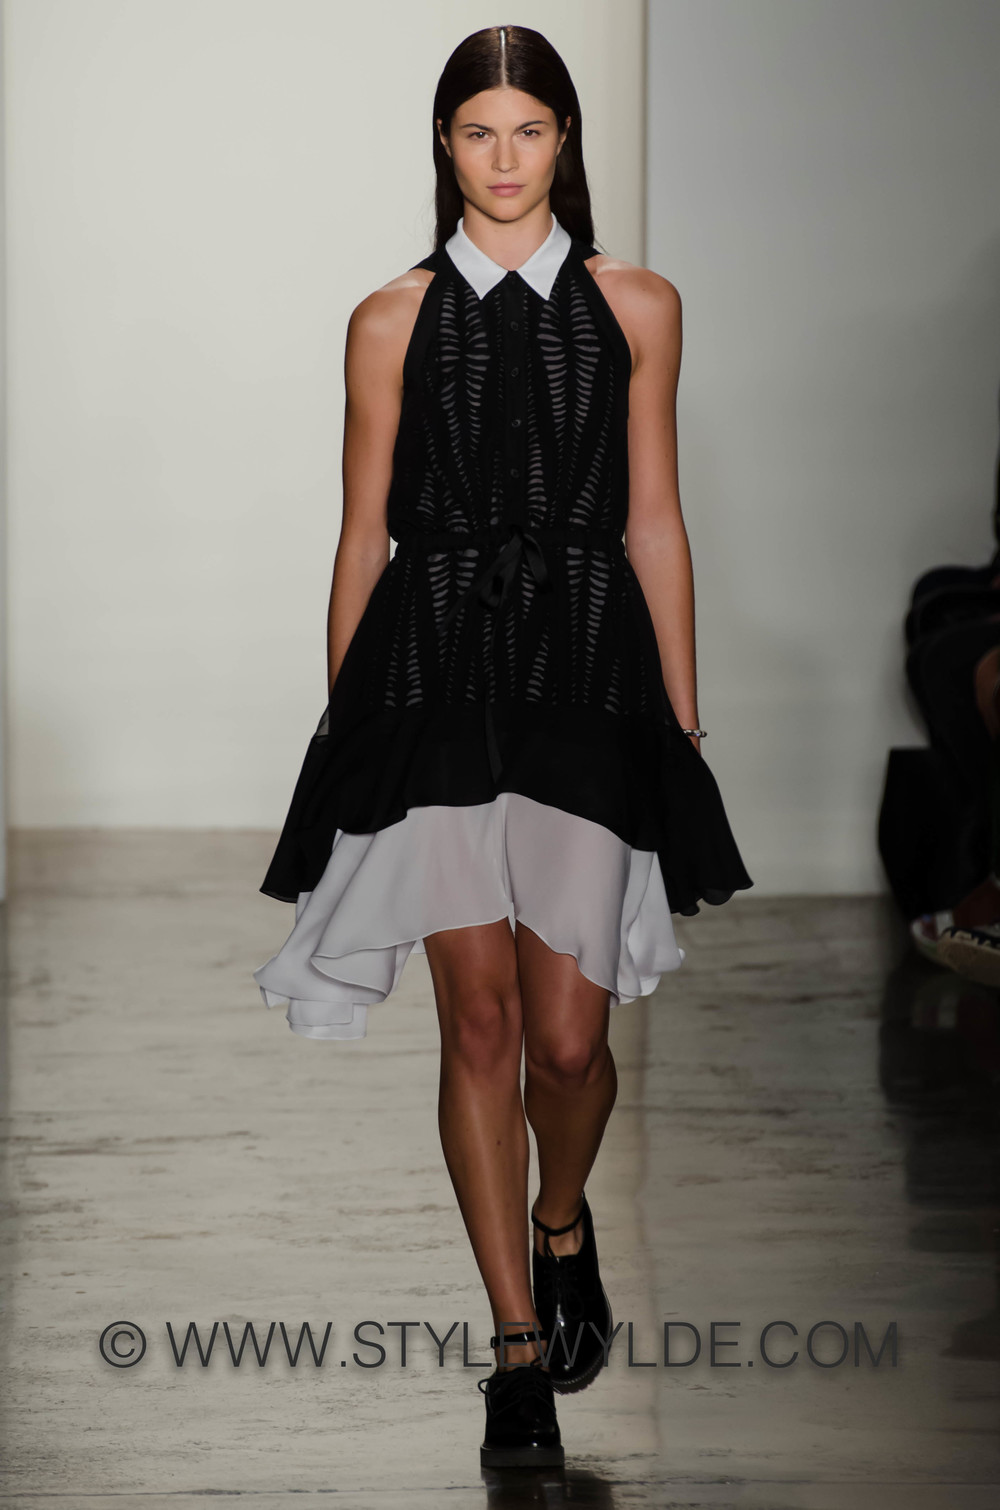 stylewylde_timo_weiland_gallery_ss2014-14.jpg